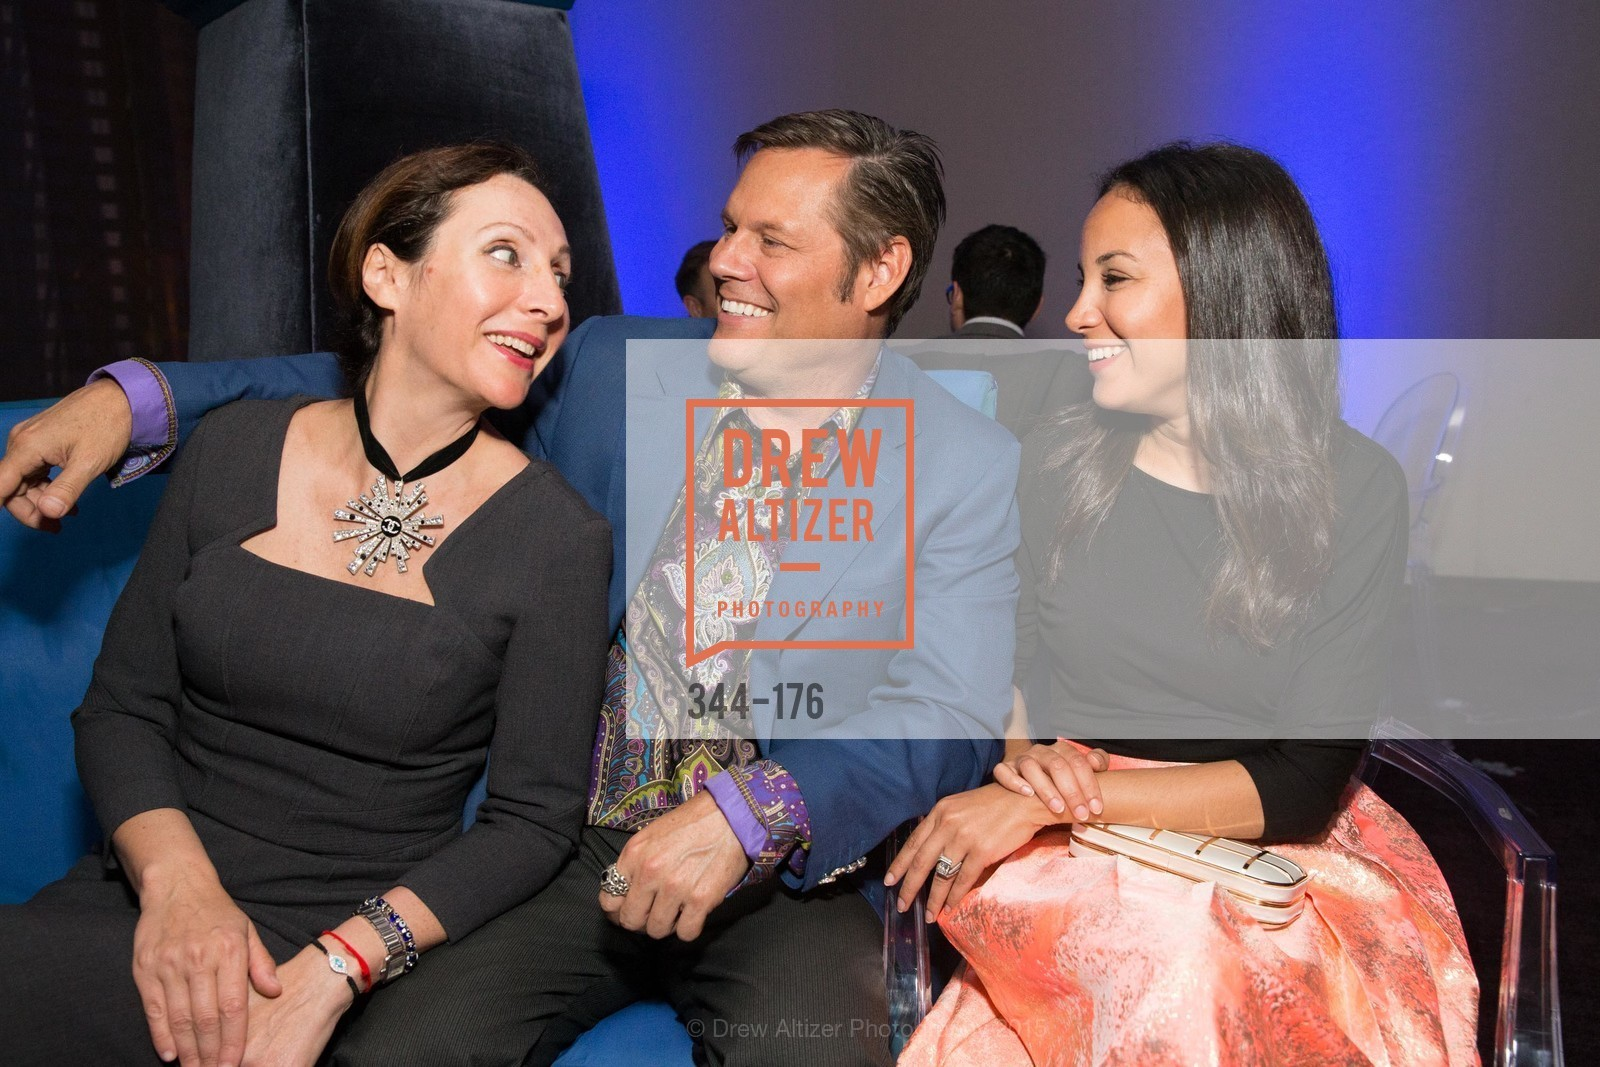 Clara Shayevich, Mark Calvano, Bahya Oumil-Murad, VIP Pride Celebration 2015, St. Regis, June 18th, 2015,Drew Altizer, Drew Altizer Photography, full-service agency, private events, San Francisco photographer, photographer california